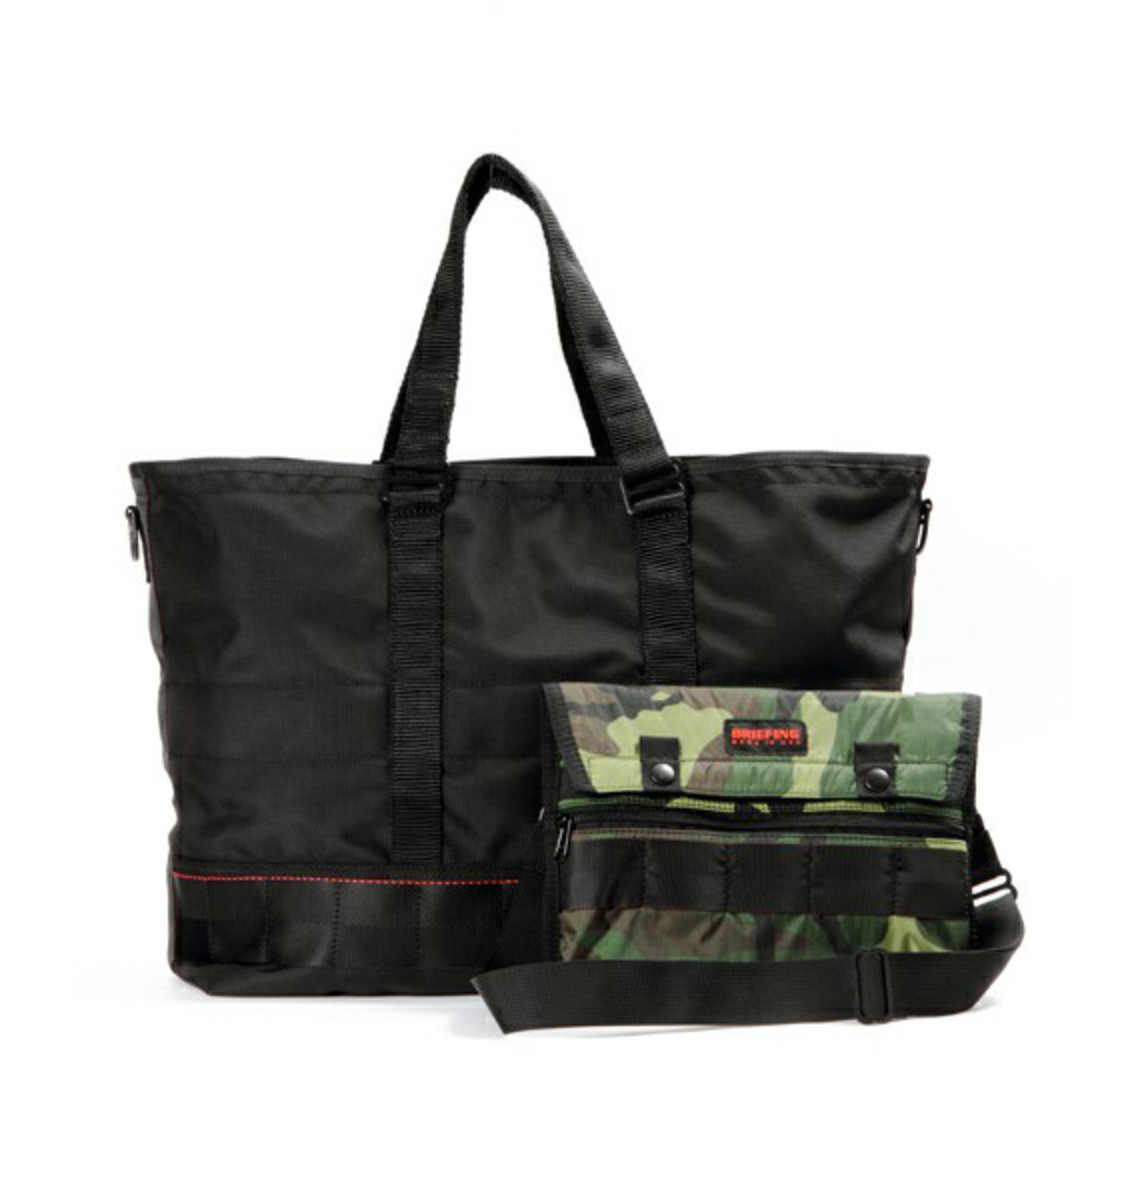 beams-plus-briefing-mil-training-tote-bag-02